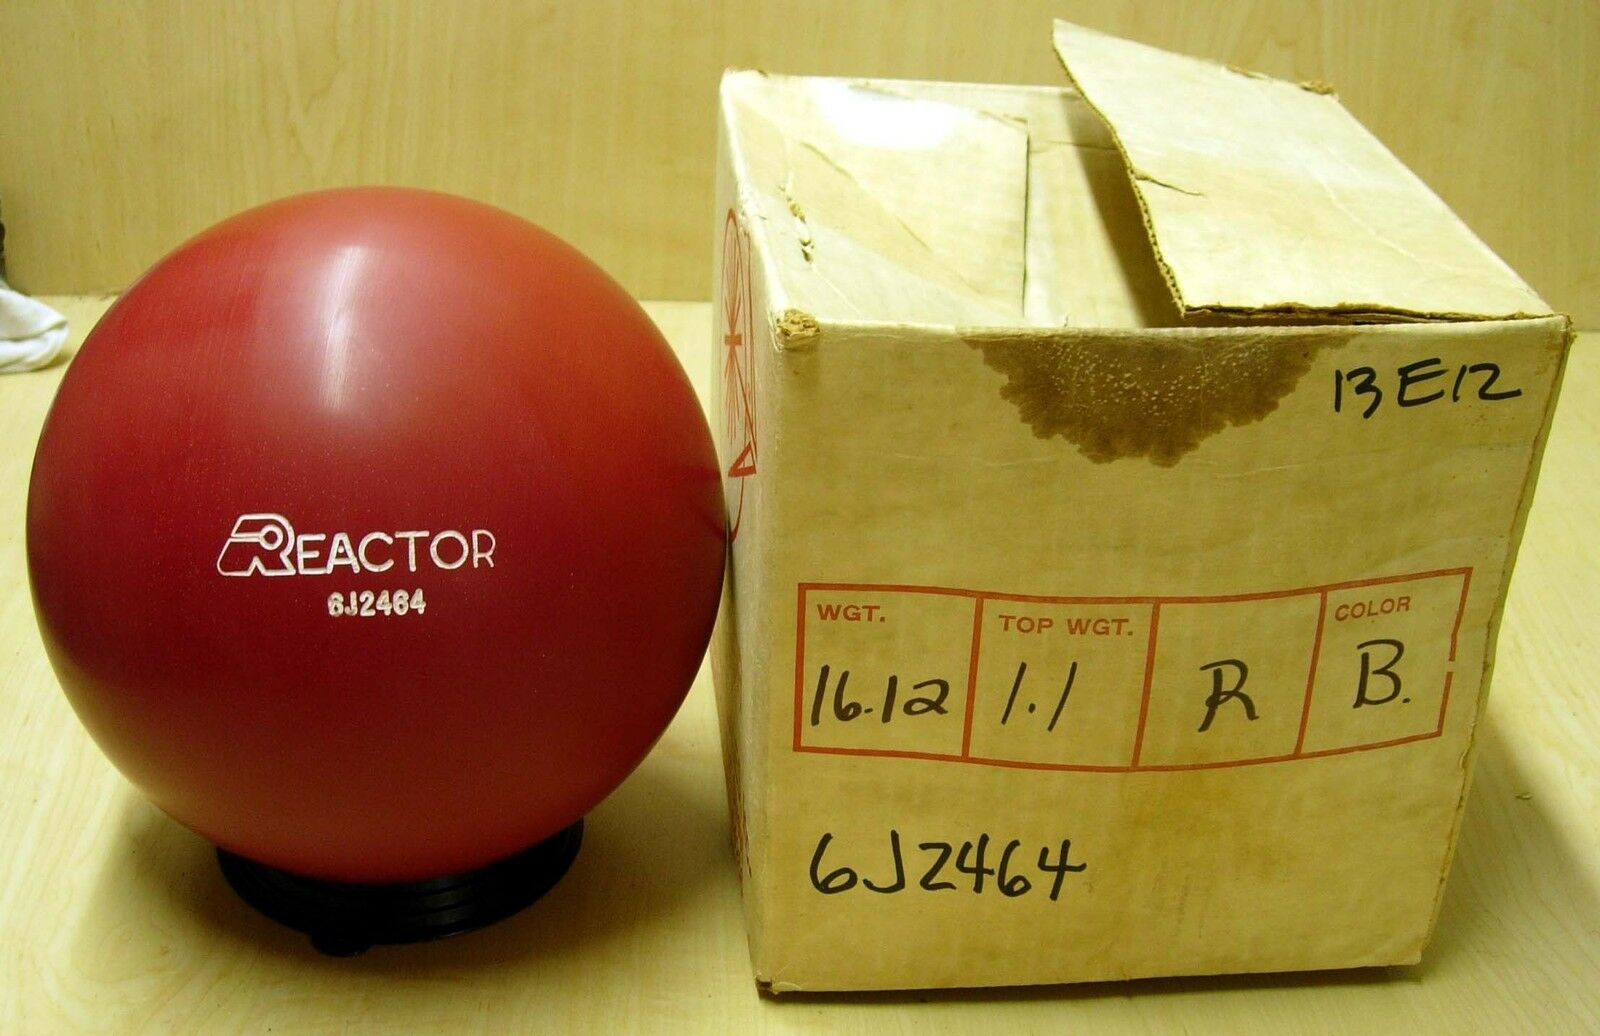 = 16.12 Blast from the Past 1986 Star Trak REACTOR Urethane Red Solid